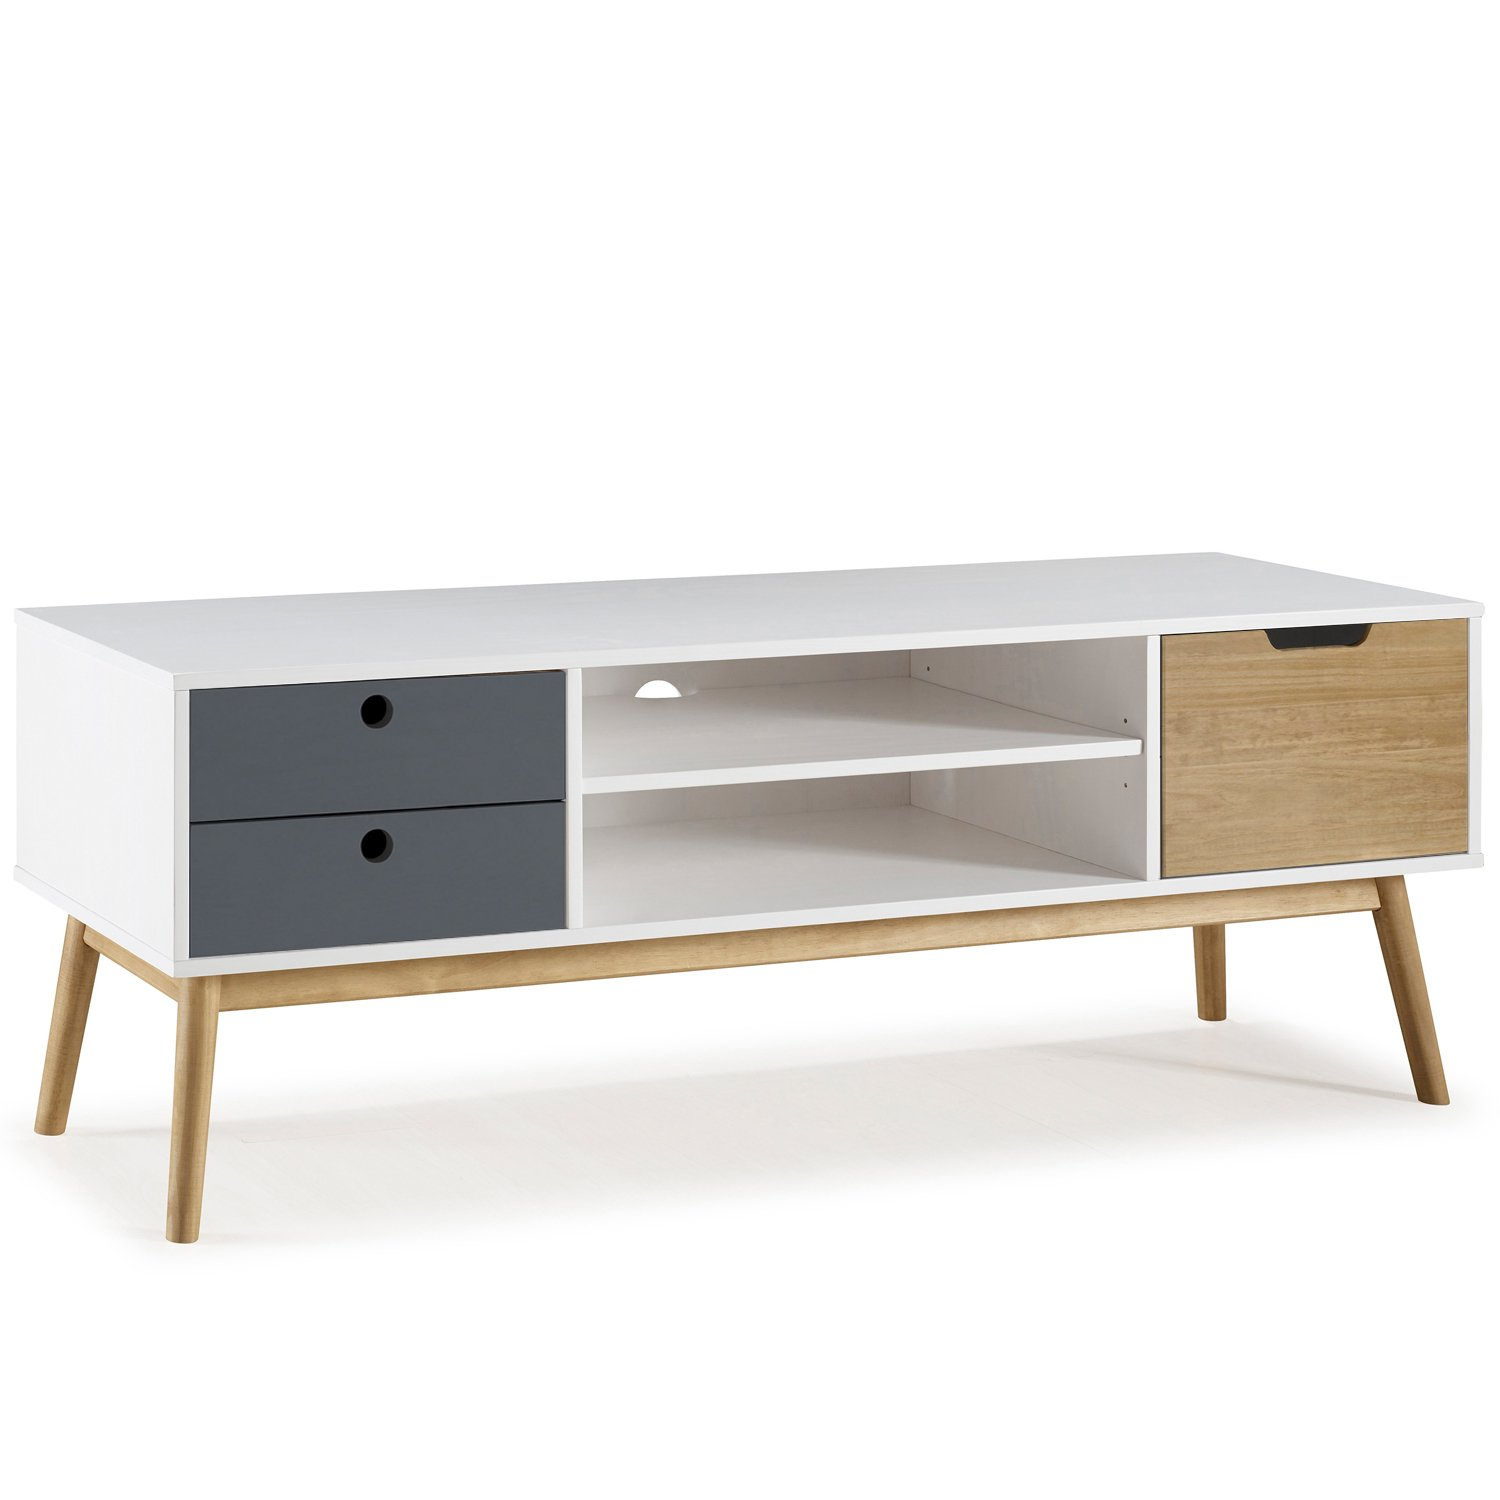 Mueble TV Leti Blanco, Pino Macizohttps://amzn.to/2BmW19j